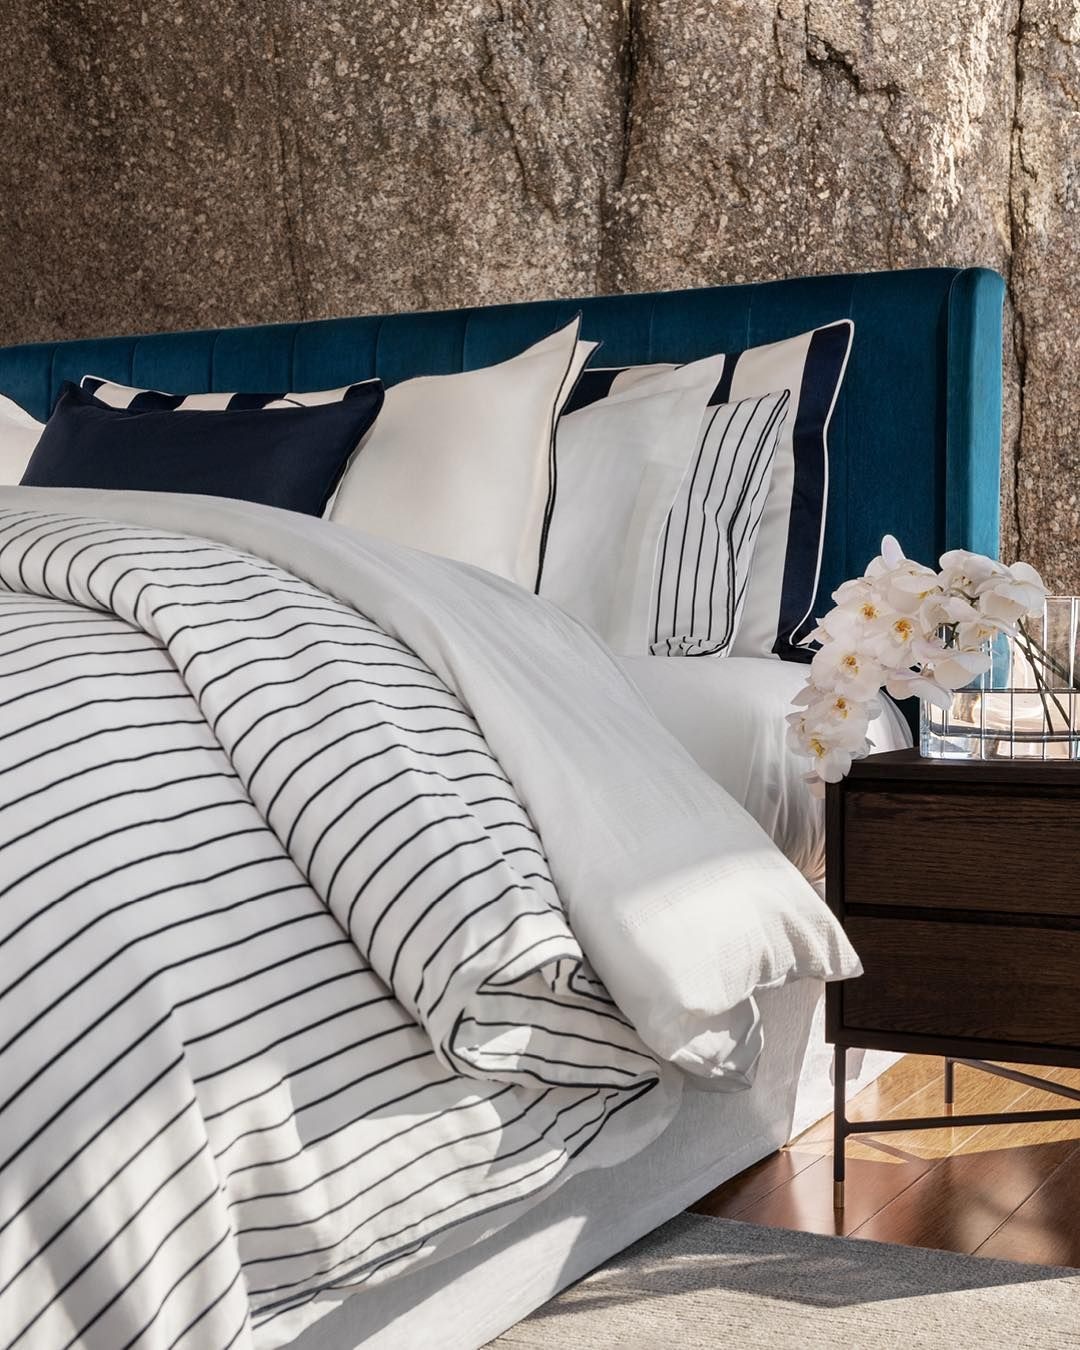 Beautiful Bed Linen In High Quality Percale Look And Feel Great Hmhome Classiccollection Bedroom Bed Linen Design White Duvet Covers Bed Linens Luxury